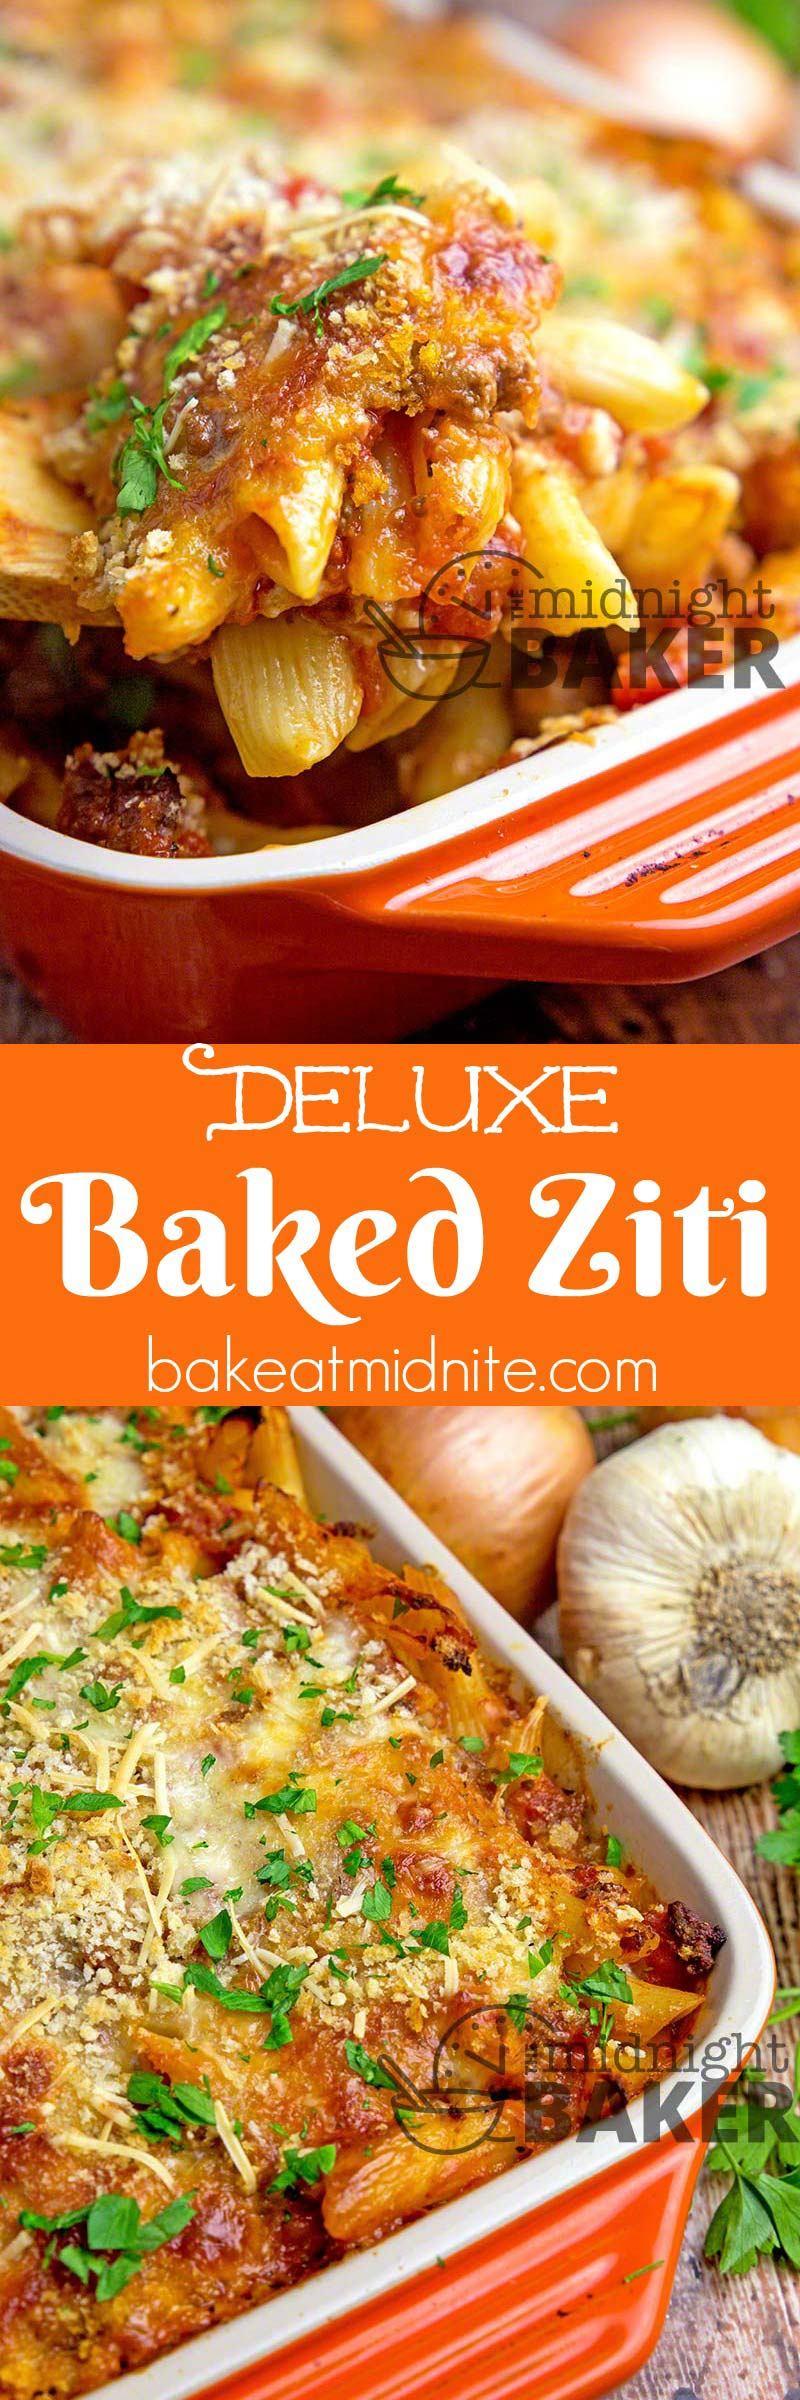 This is baked ziti done even better! Three cheeses, ground beef and a crispy crunchy top!